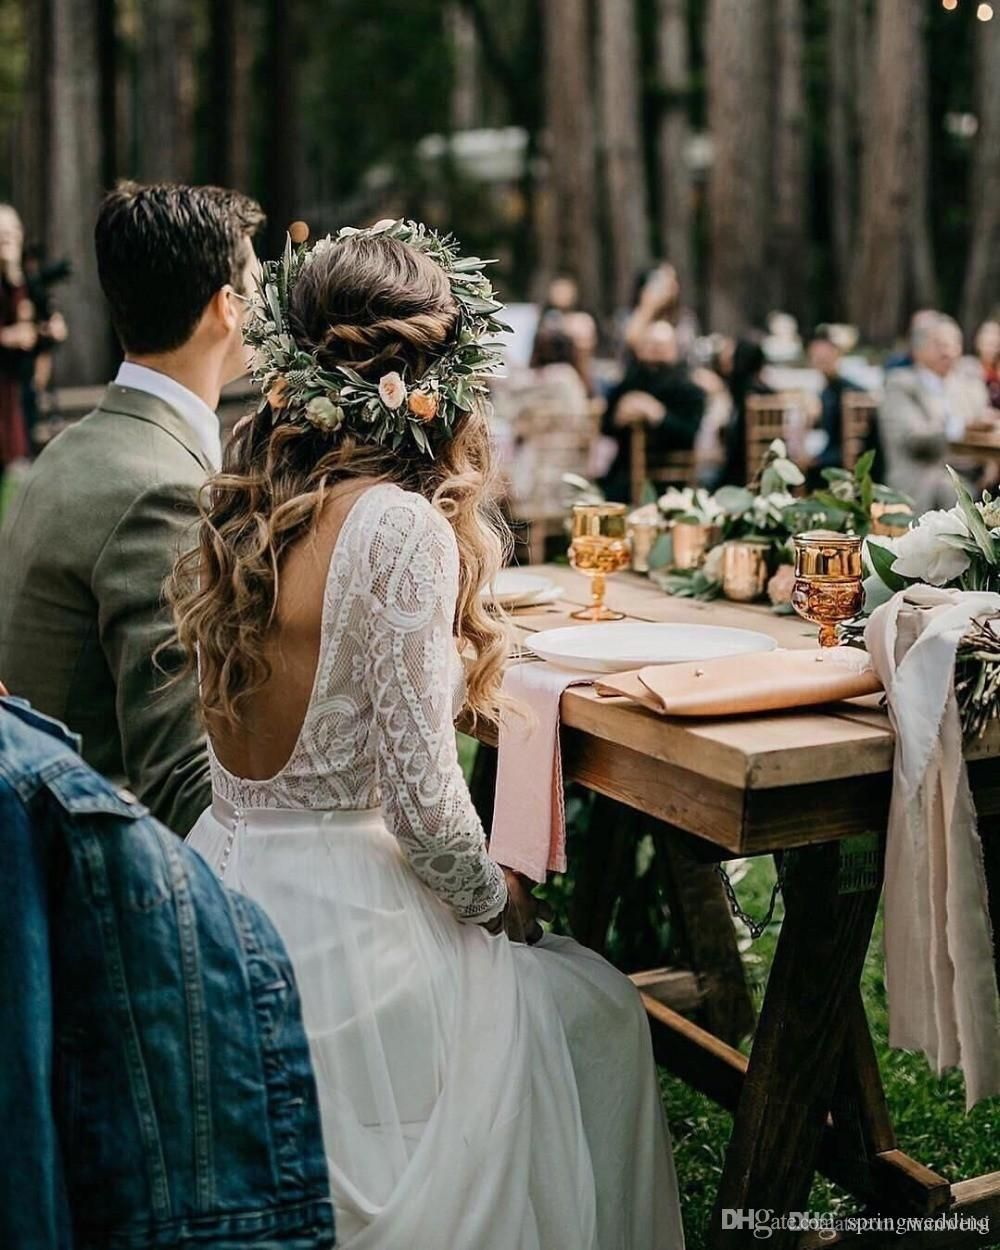 Discount Beach Bohemian Wedding Dresses Sexy Backless Long Sleeve Country Boho Bridal Gowns 2019 Custom Made Wedding Dress A Line Wedding Dresses With Lace Best Designer Wedding Dresses From Springwedding, $183.92| DHgate.Com Wholesale a line wedding dresses with lace, best designer wedding dresses and classic lace wedding dresses on DHgate.com are fashion and cheap. The well-made beach bohemian wedding dresses sexy backless long sleeve country boho bridal gowns 2019 custom made wedding dress so #bohoweddingdress